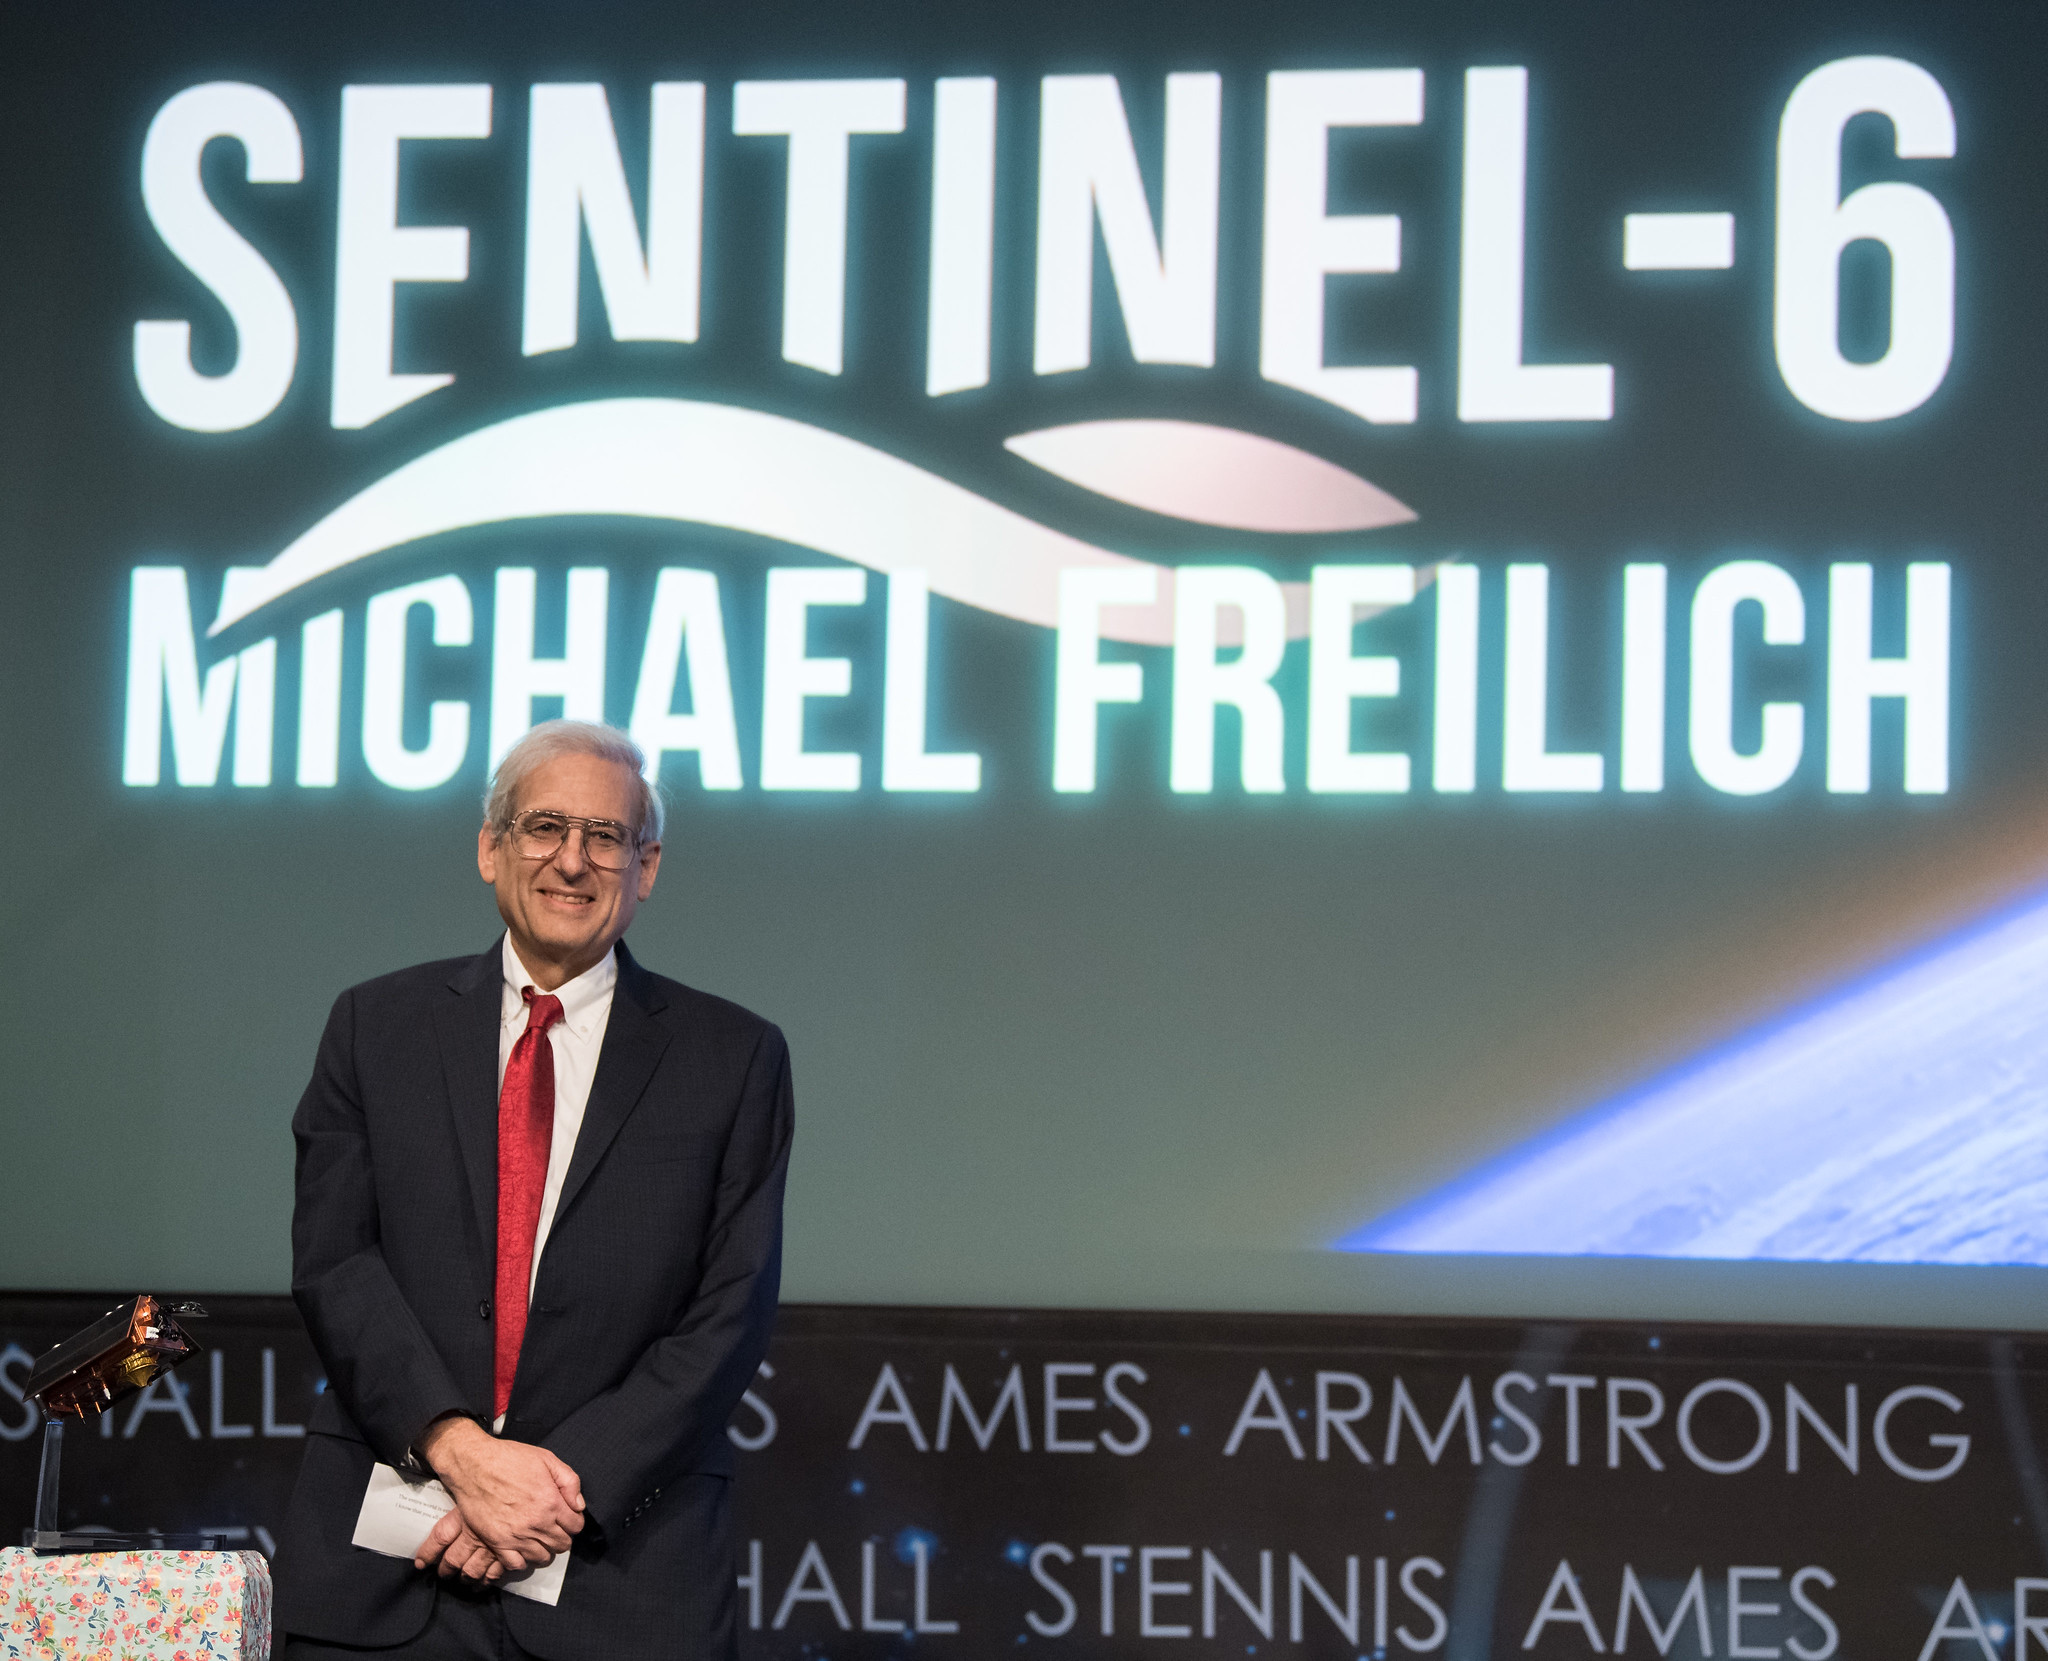 NASA Administrator Statement on the Passing of Mike Freilich